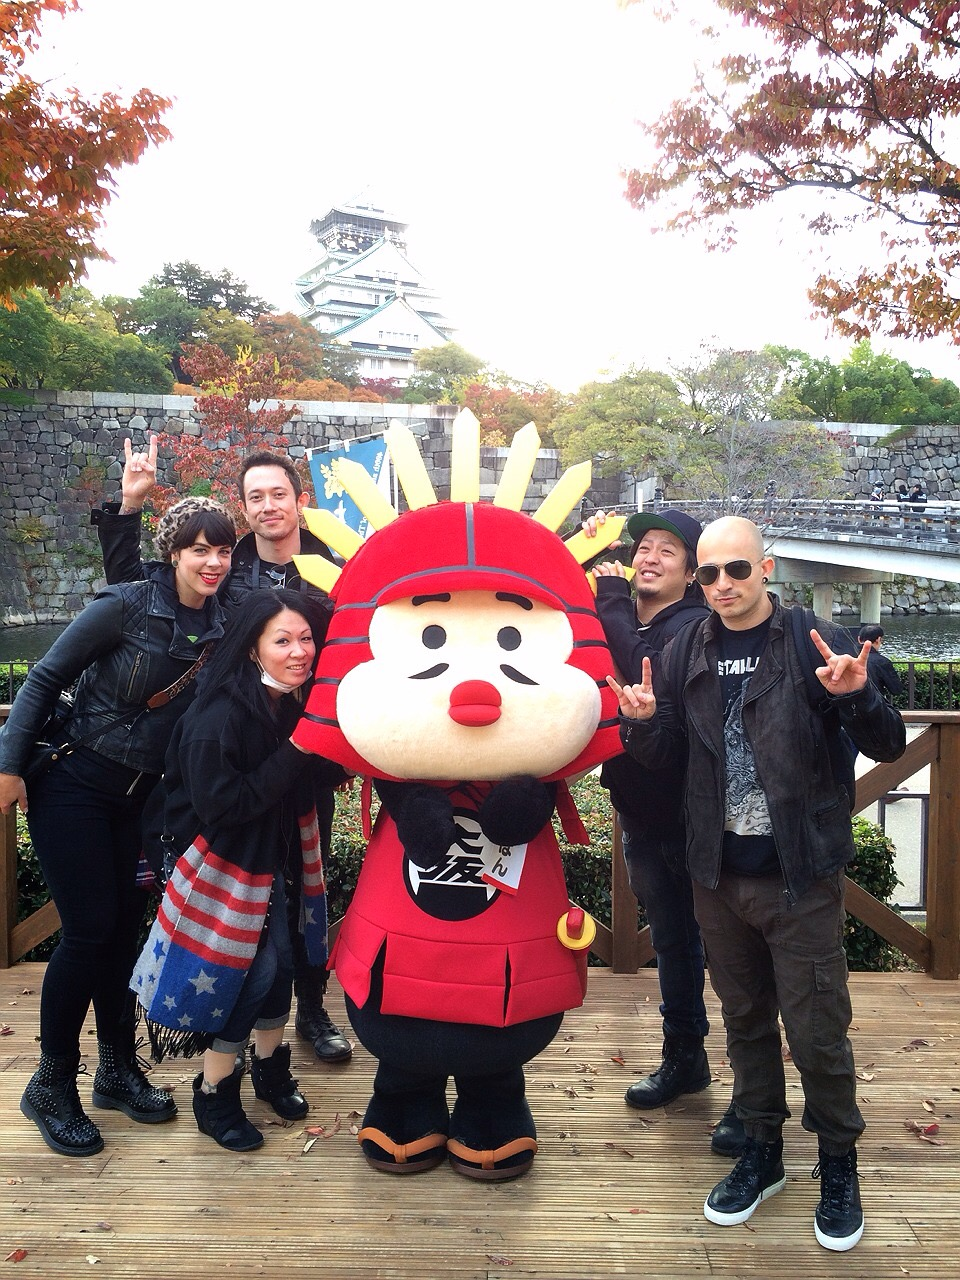 With our friends Paolo, Yoko, and Yuichi at Osaka Castle